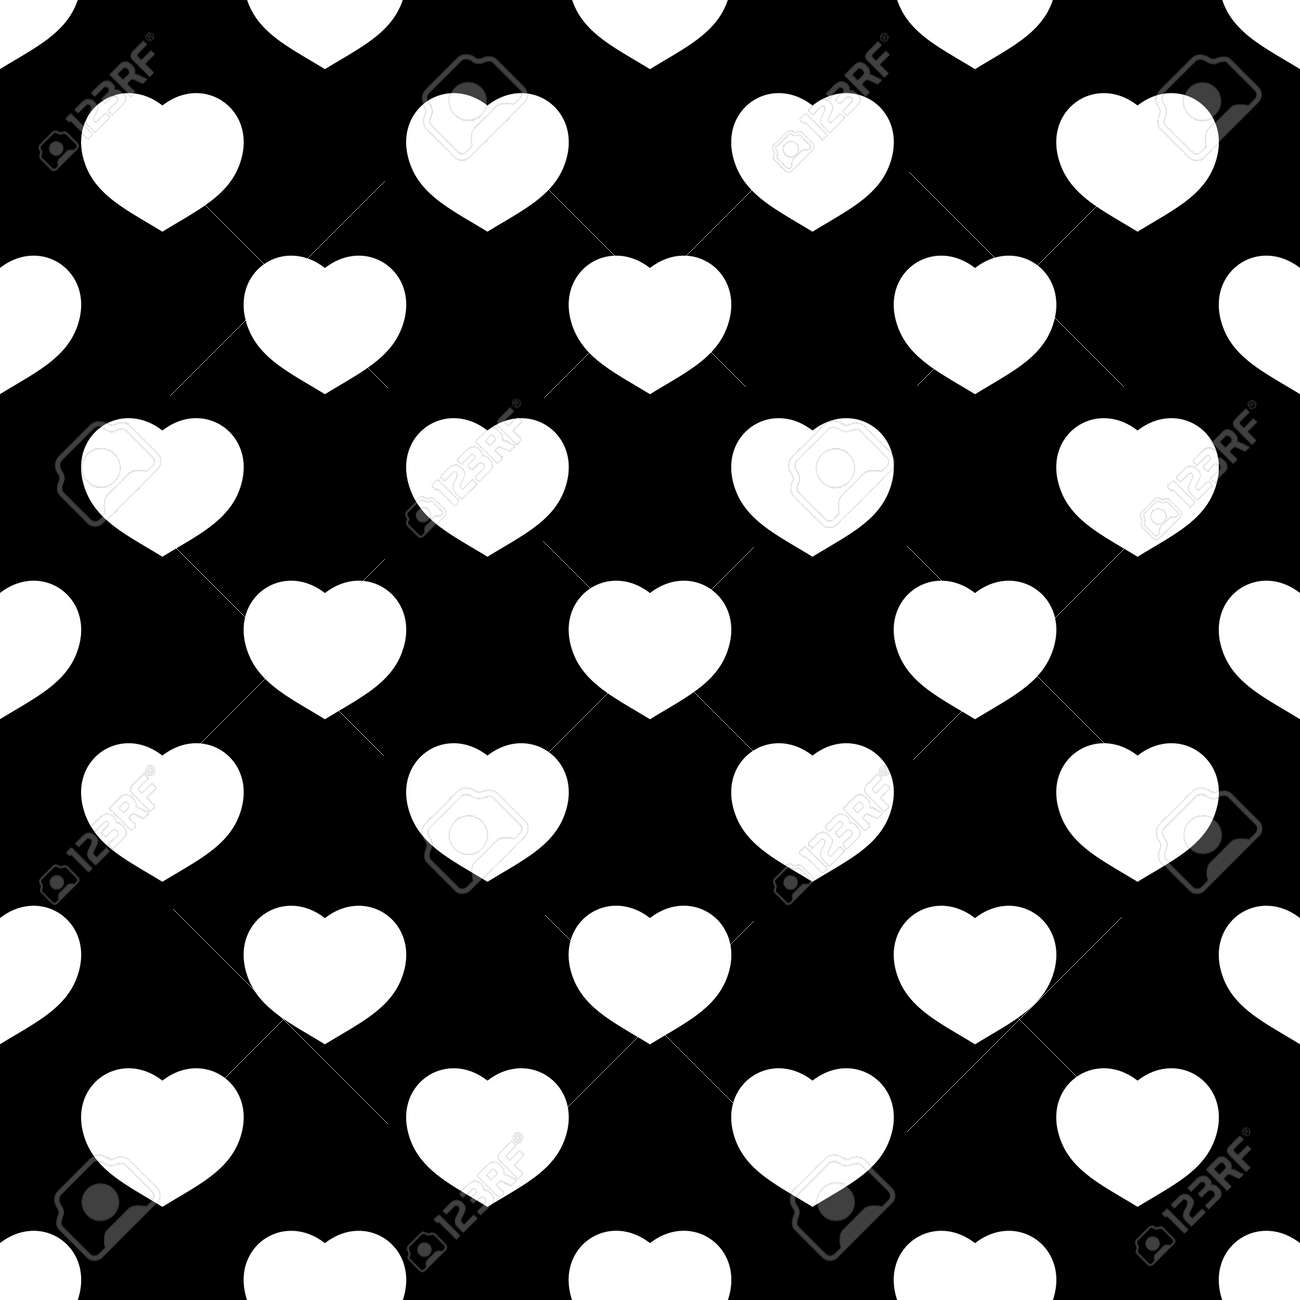 White Hearts Seamless Pattern On Black Background Fashion Love